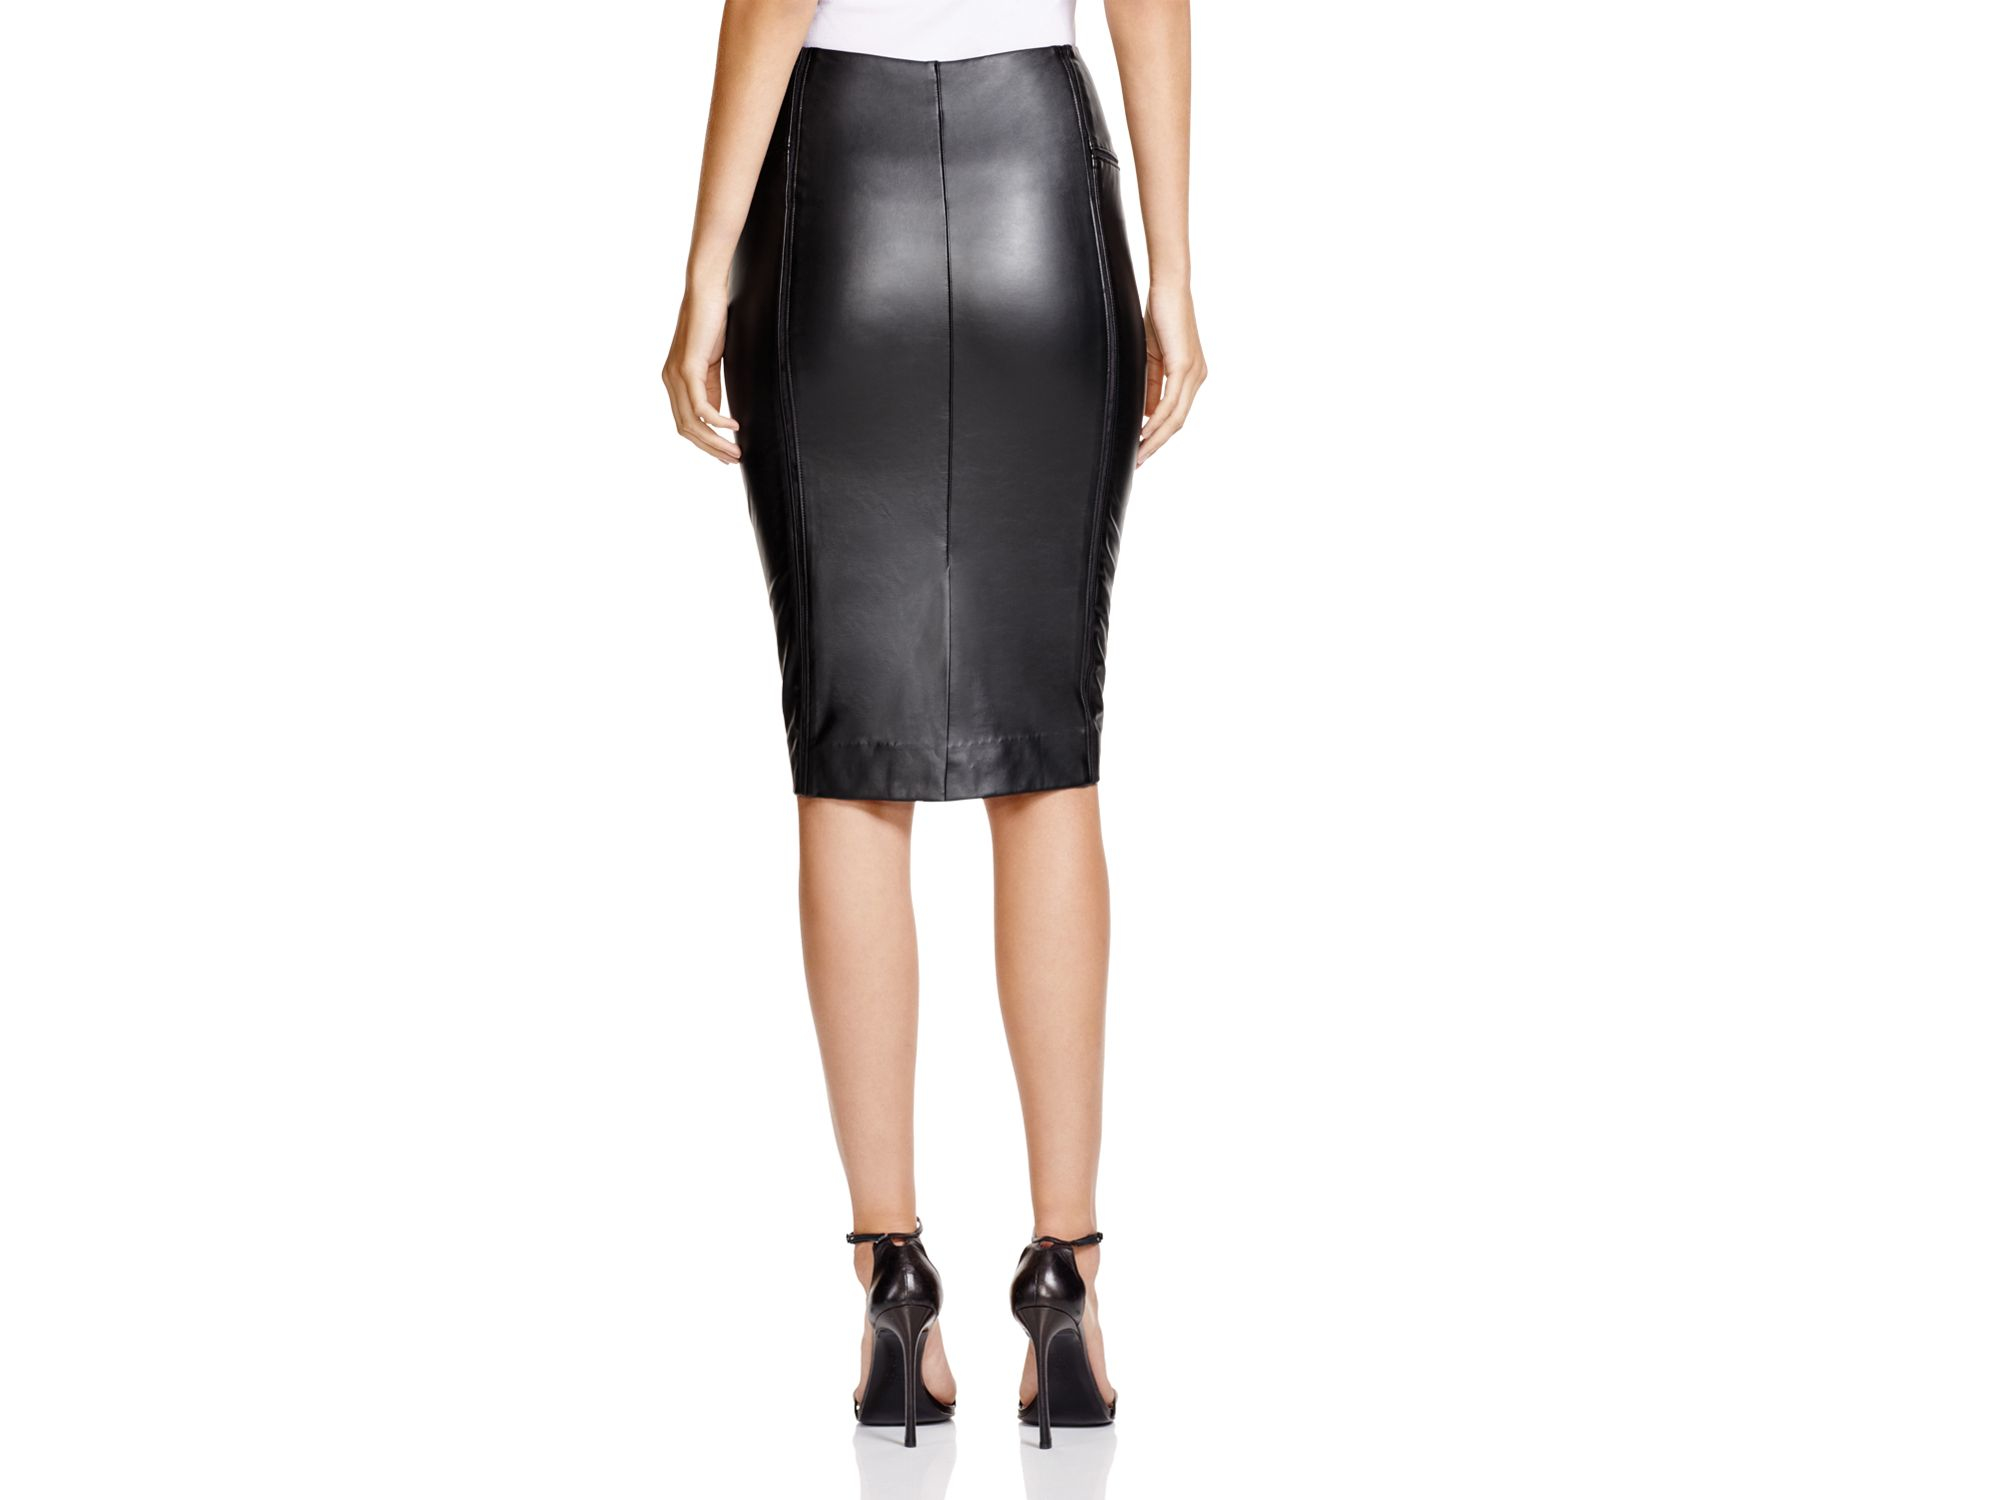 Lyssé Faux Leather Pencil Skirt in Black | Lyst